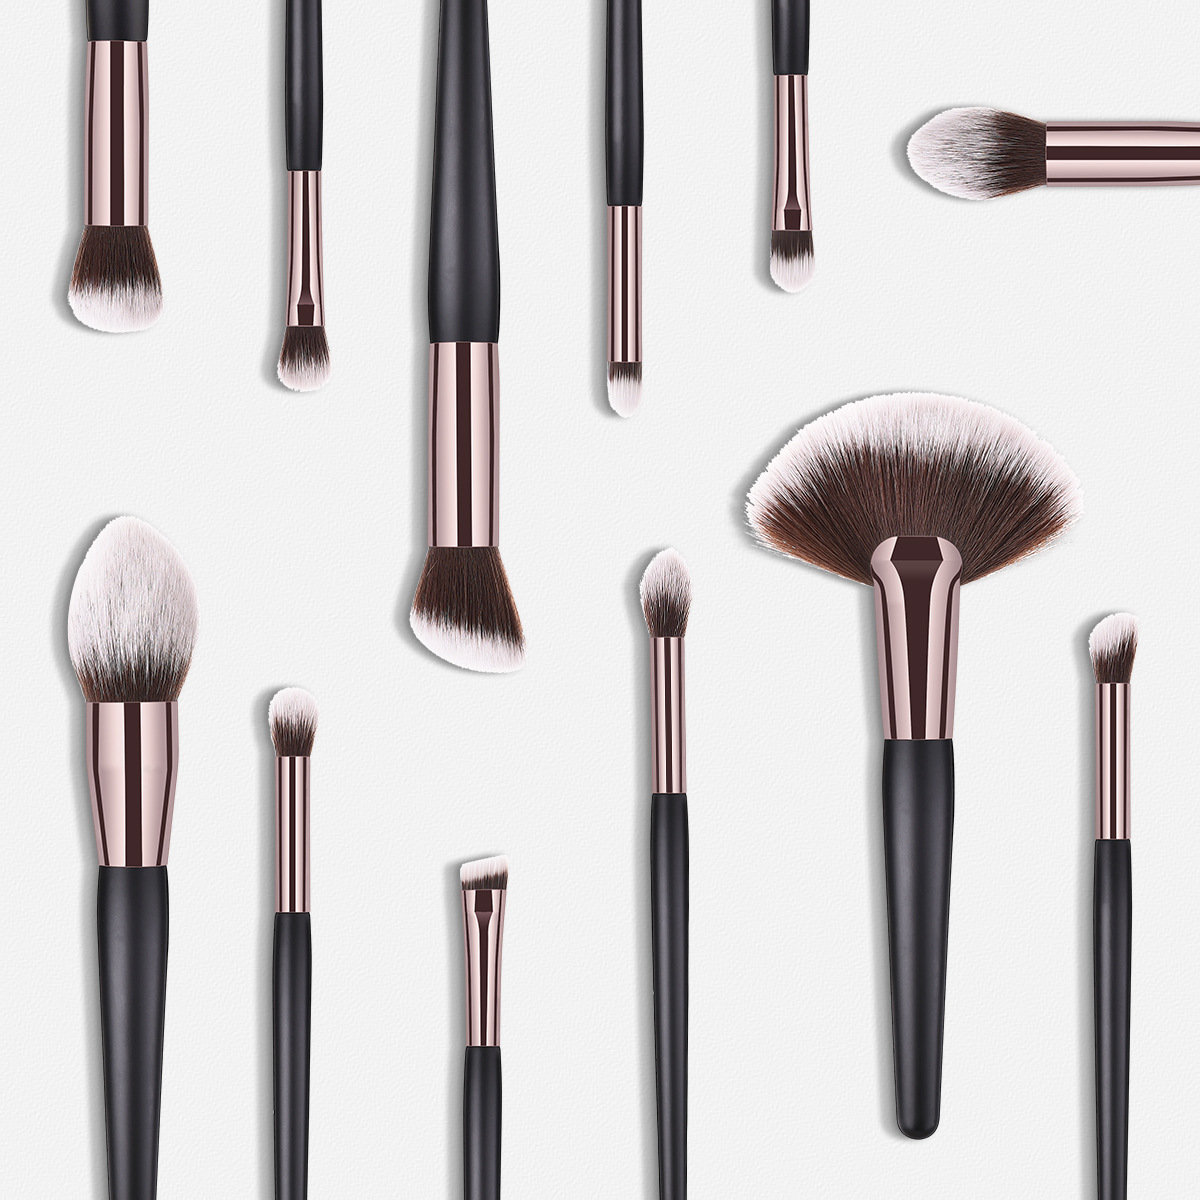 14pcs Makeup Brushes Set Powder EyeShadow Blending Eyeliner Eyelash Lip Portable Brown Contour Make Up Tool